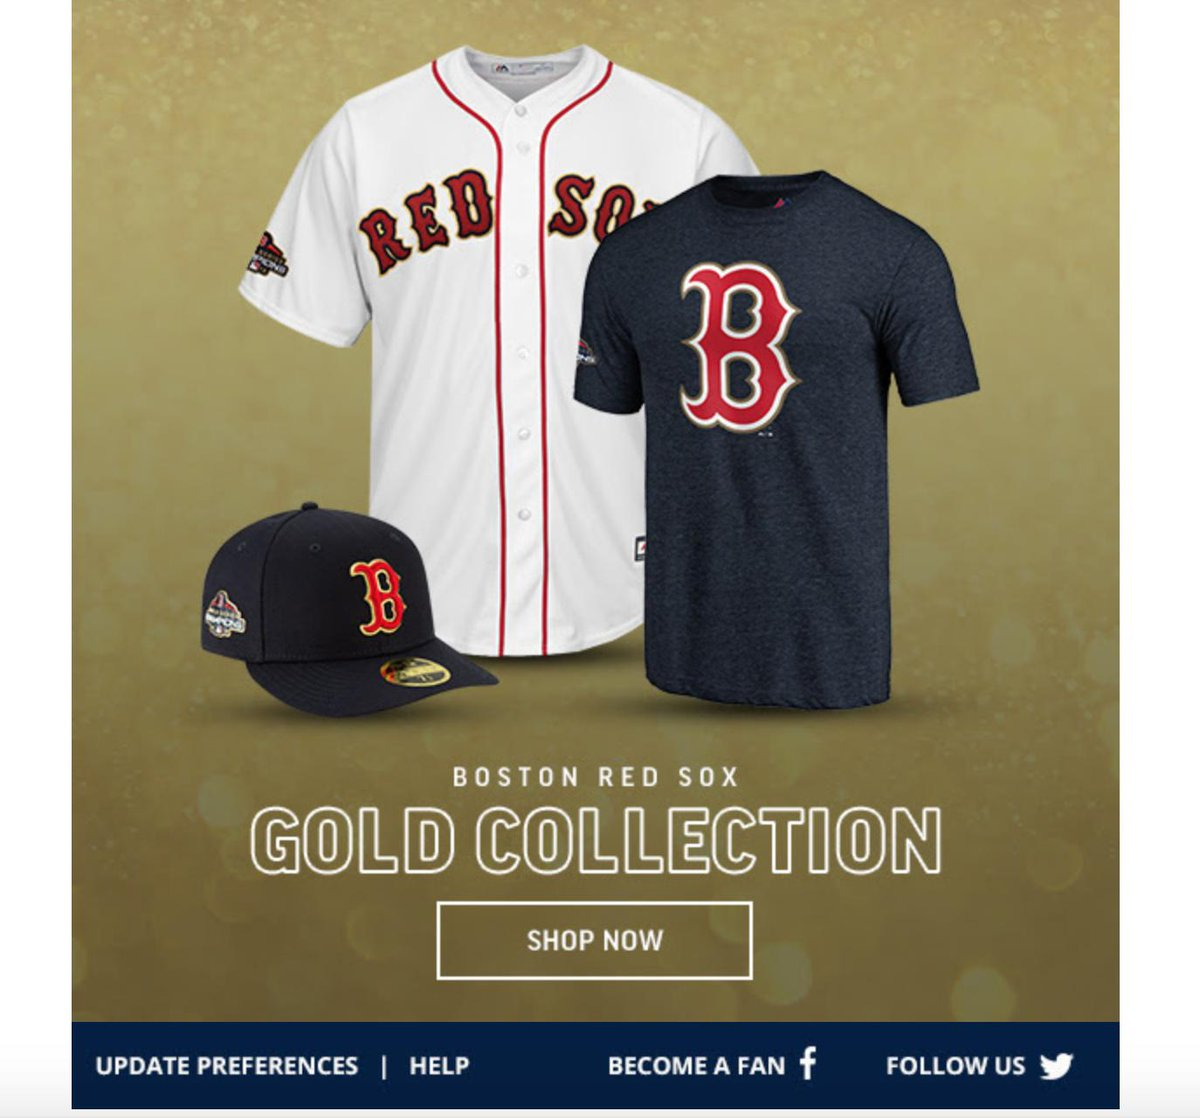 081de59813adbf As expected, the Red Sox went ahead and announced that they'll have  gold-trimmed jerseys ...